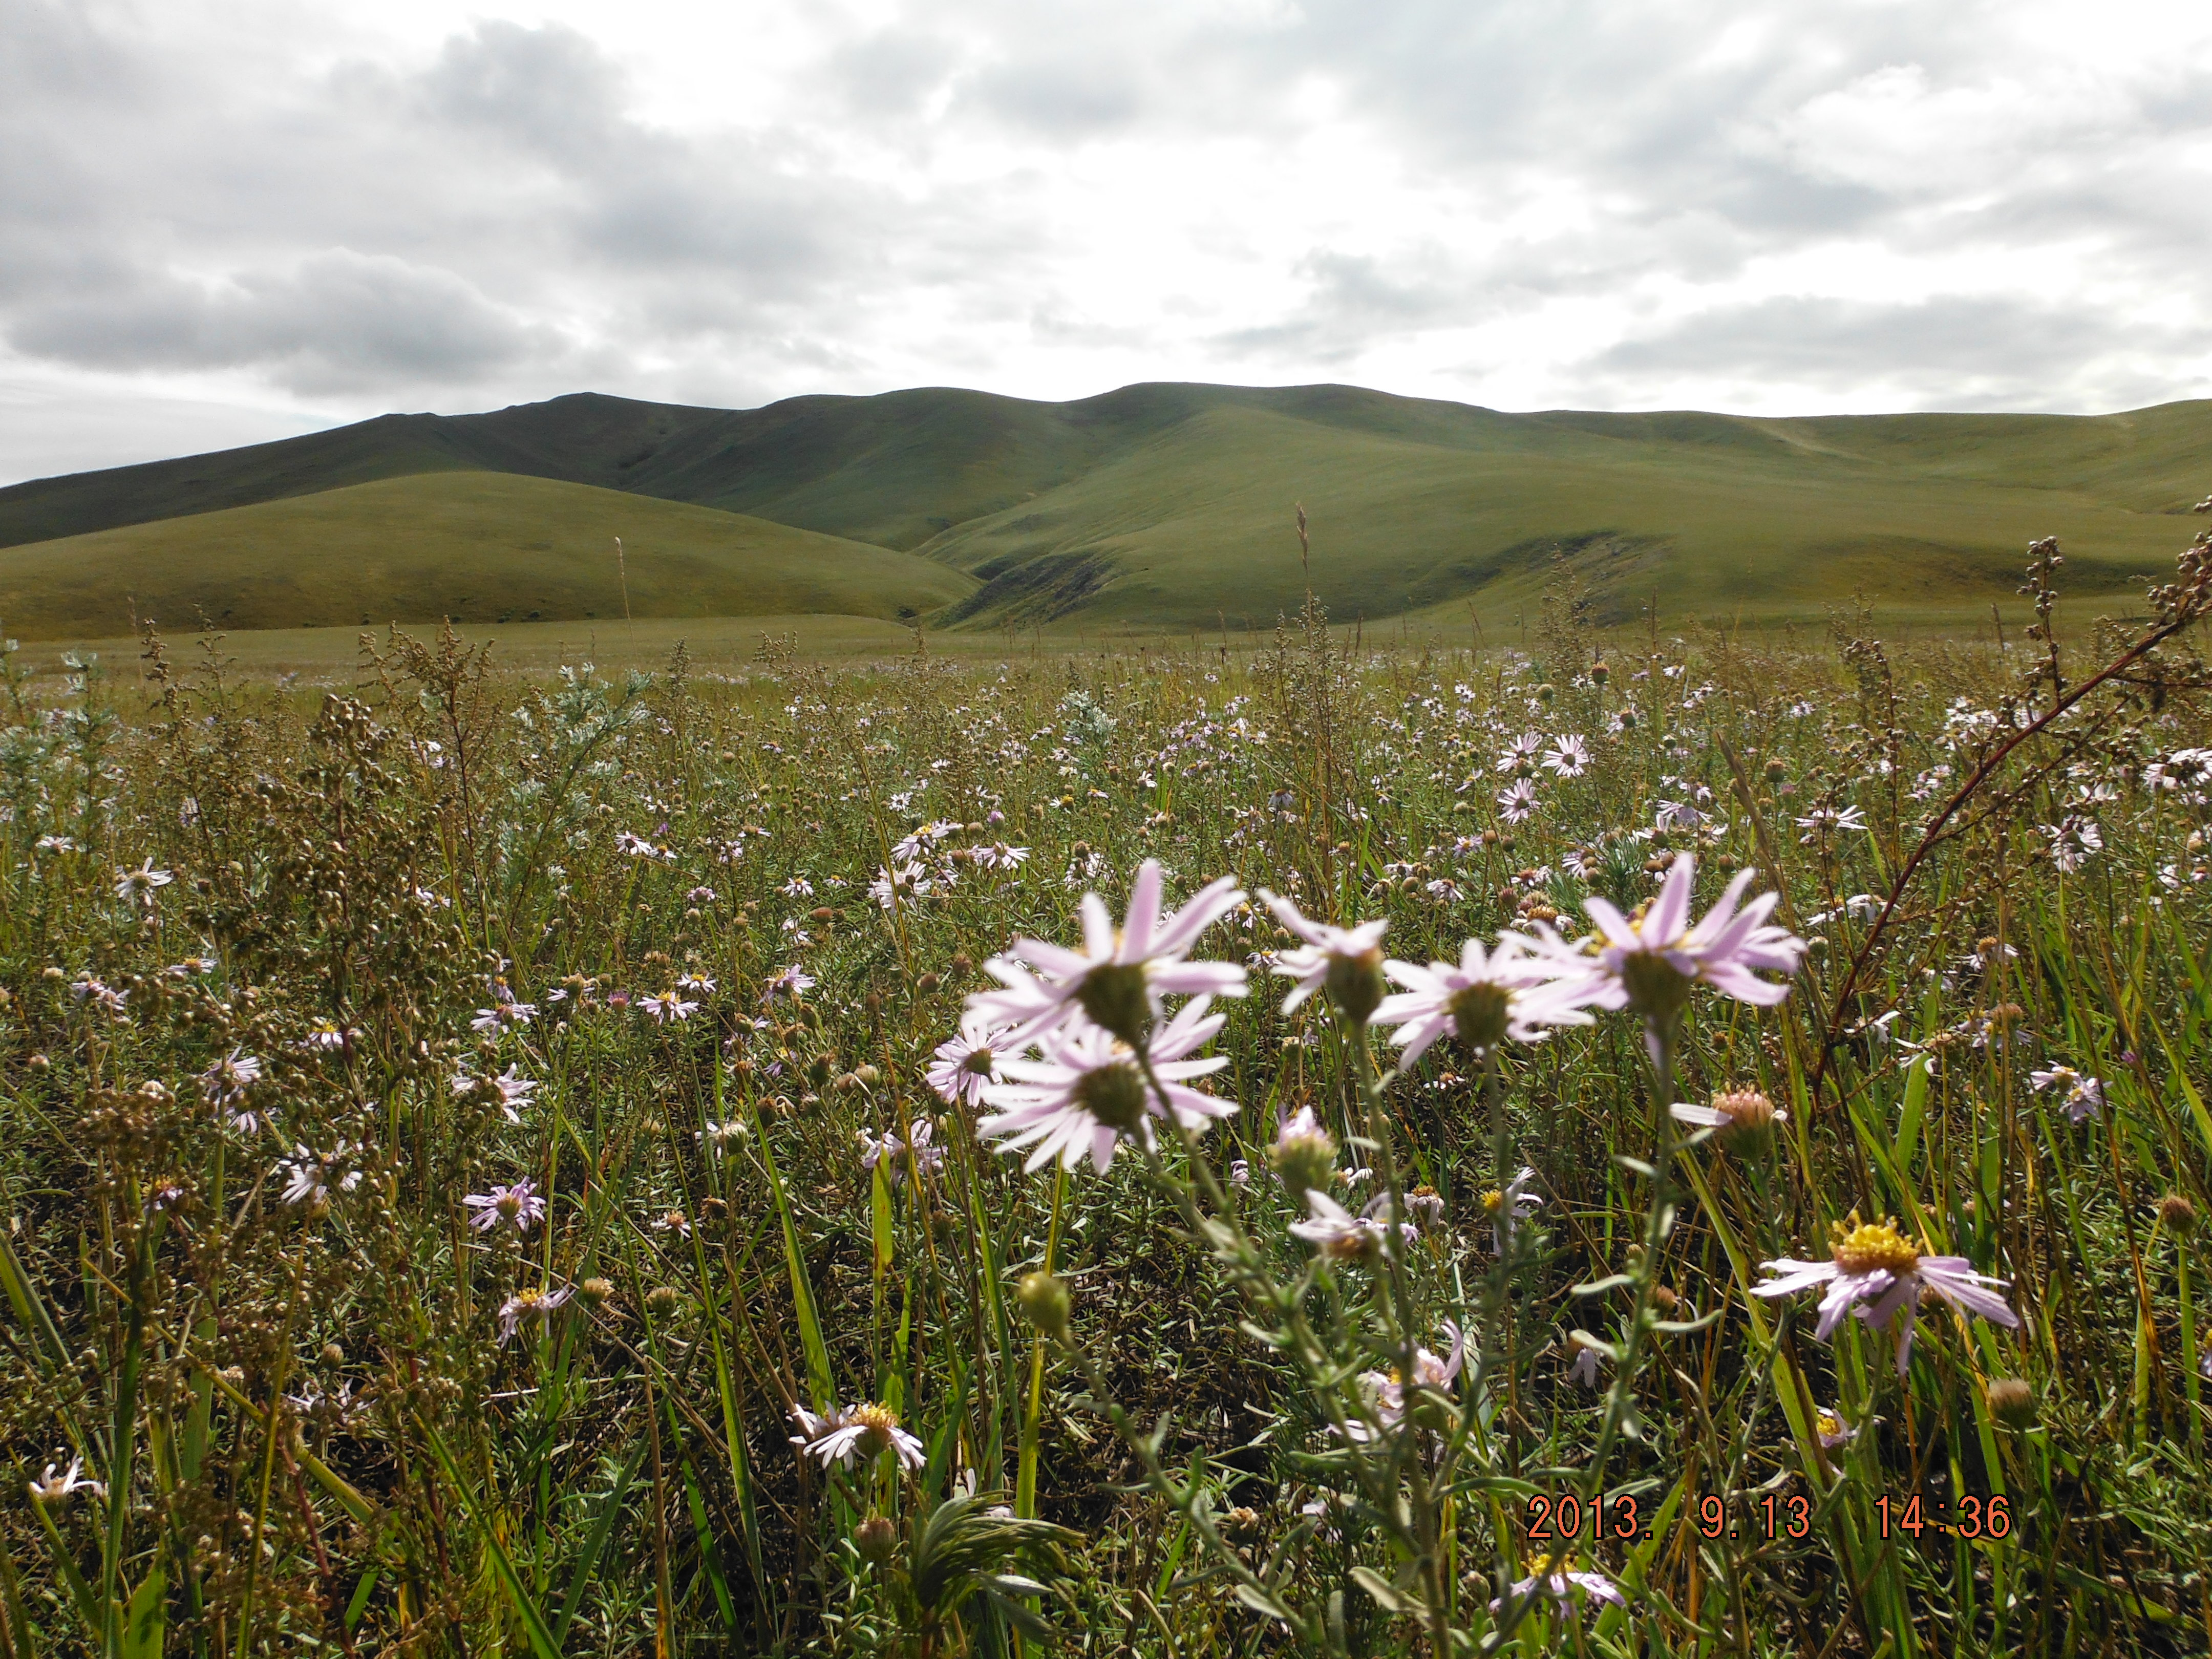 Videos highlight impact of Mongolian mining - Sustainable